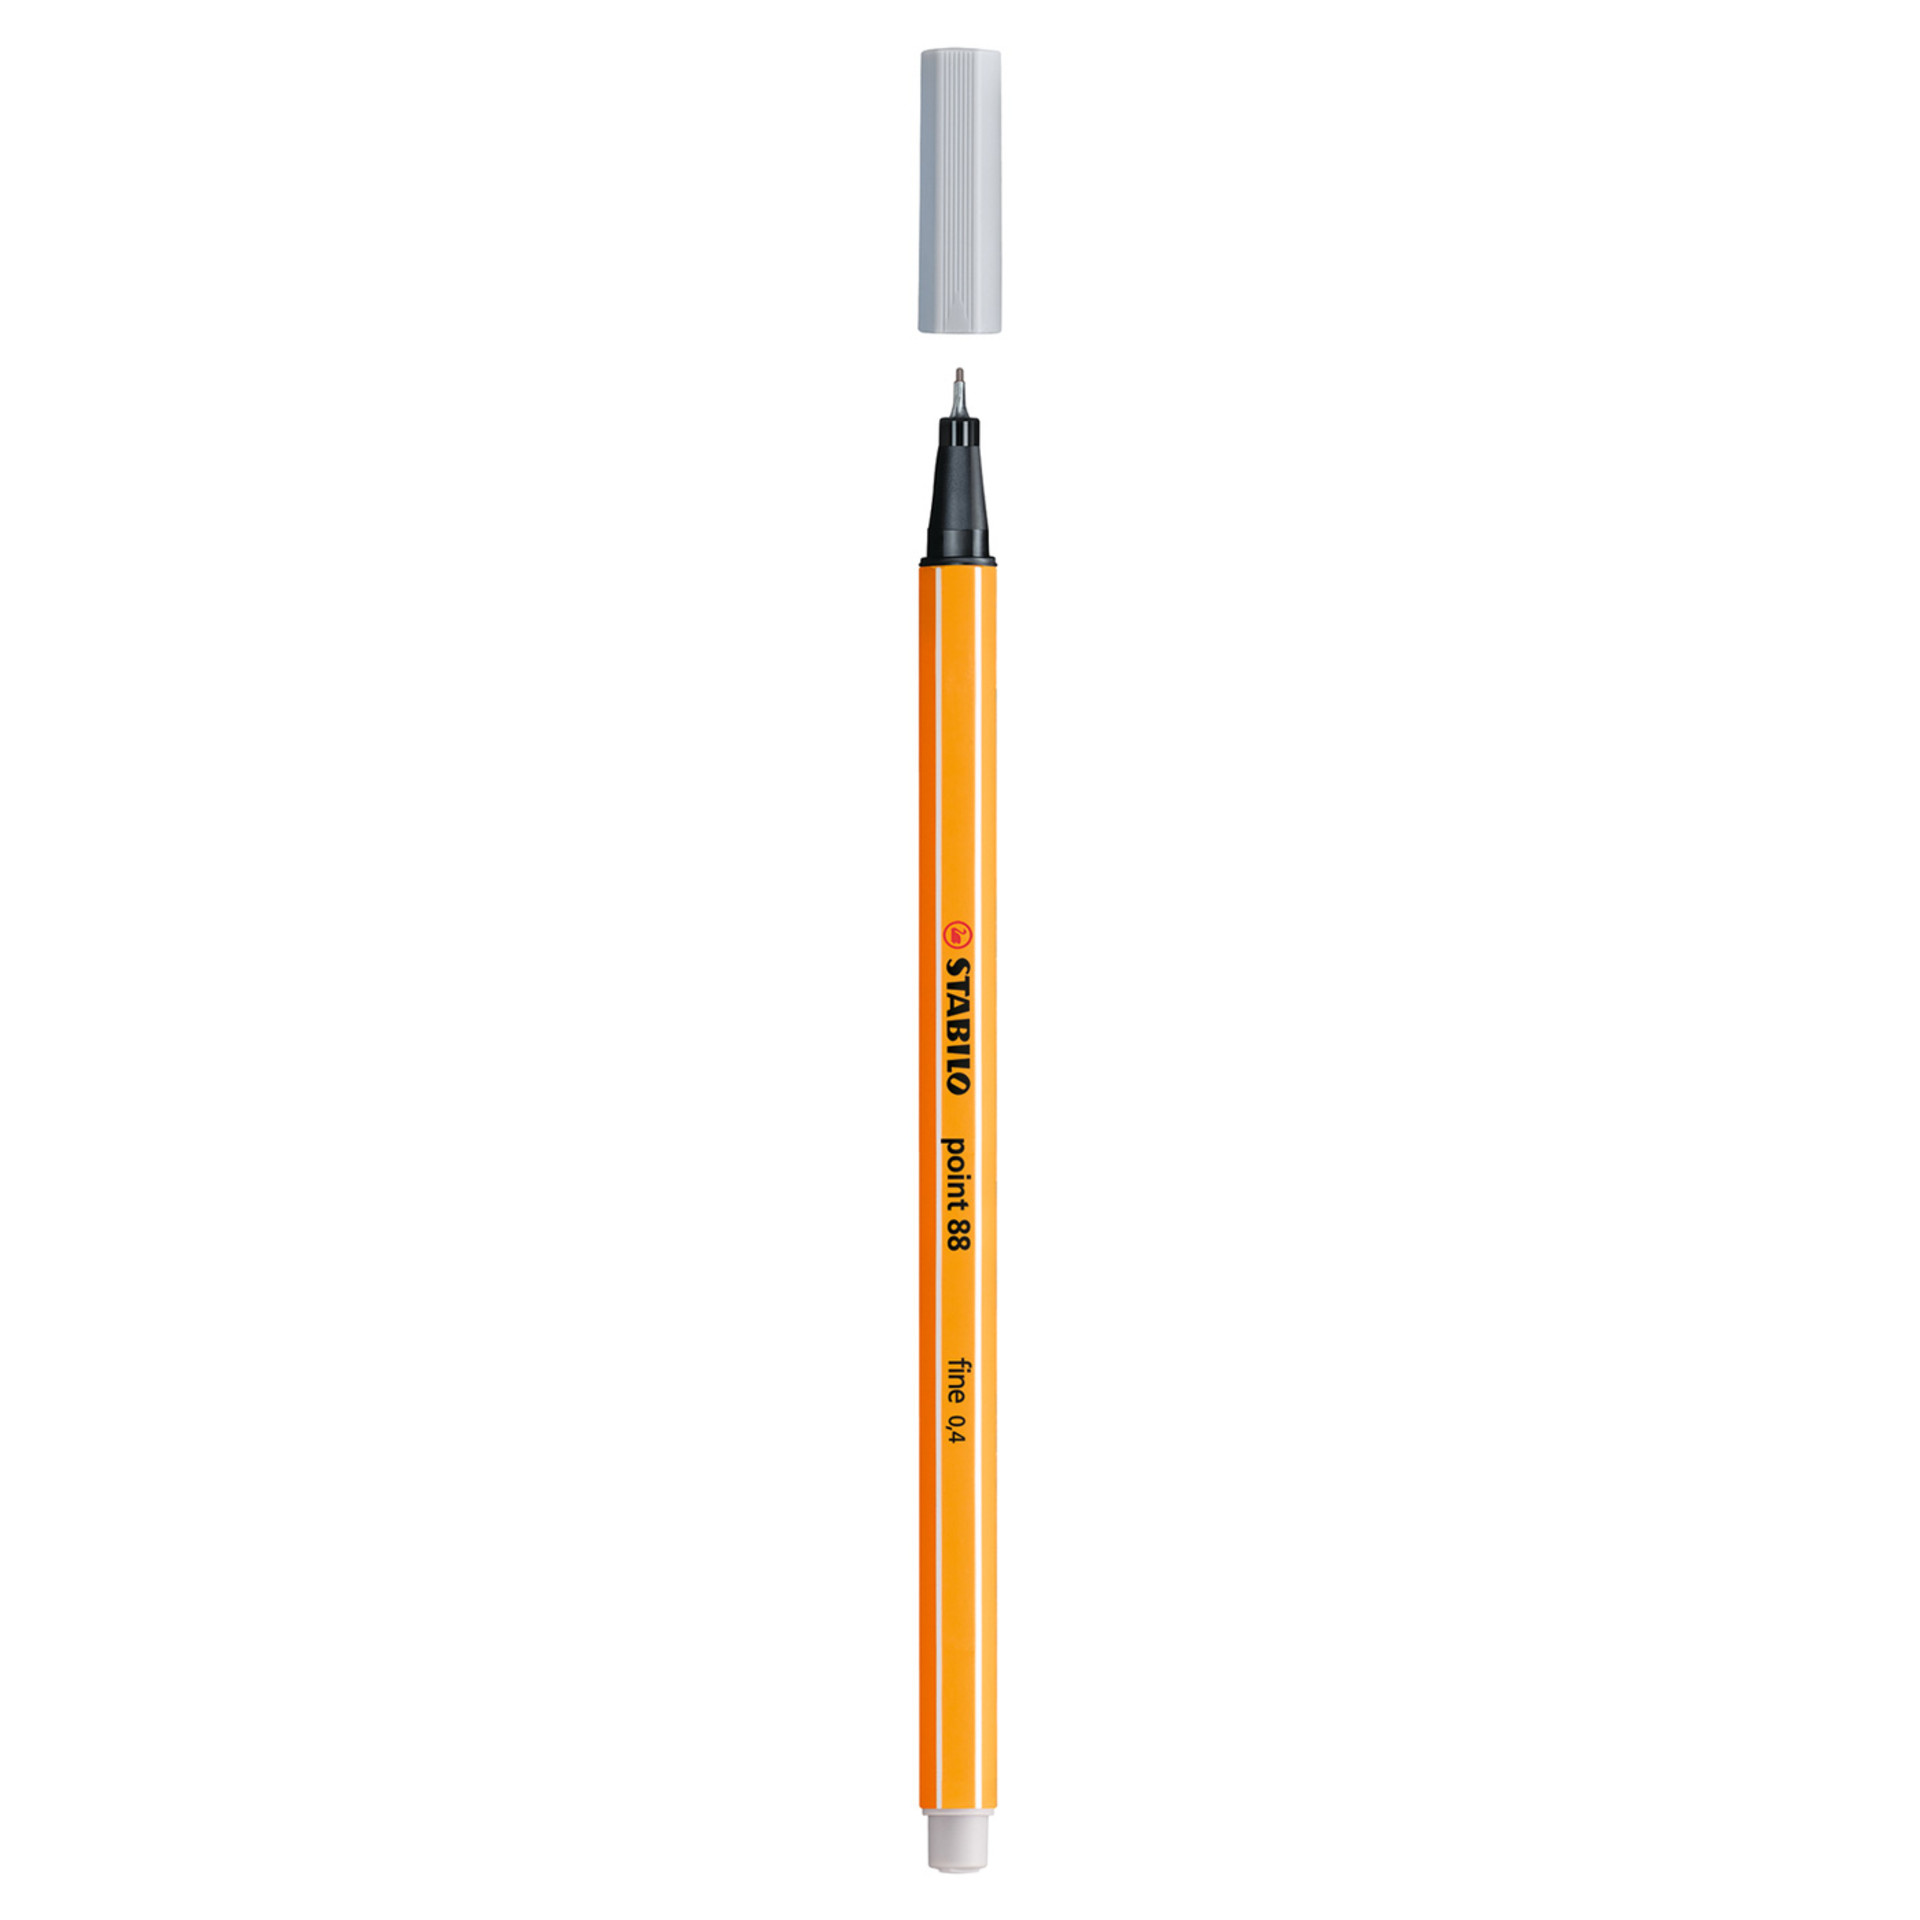 Stabilo Point 88 .4mm Fineliner Pen – Light Gray